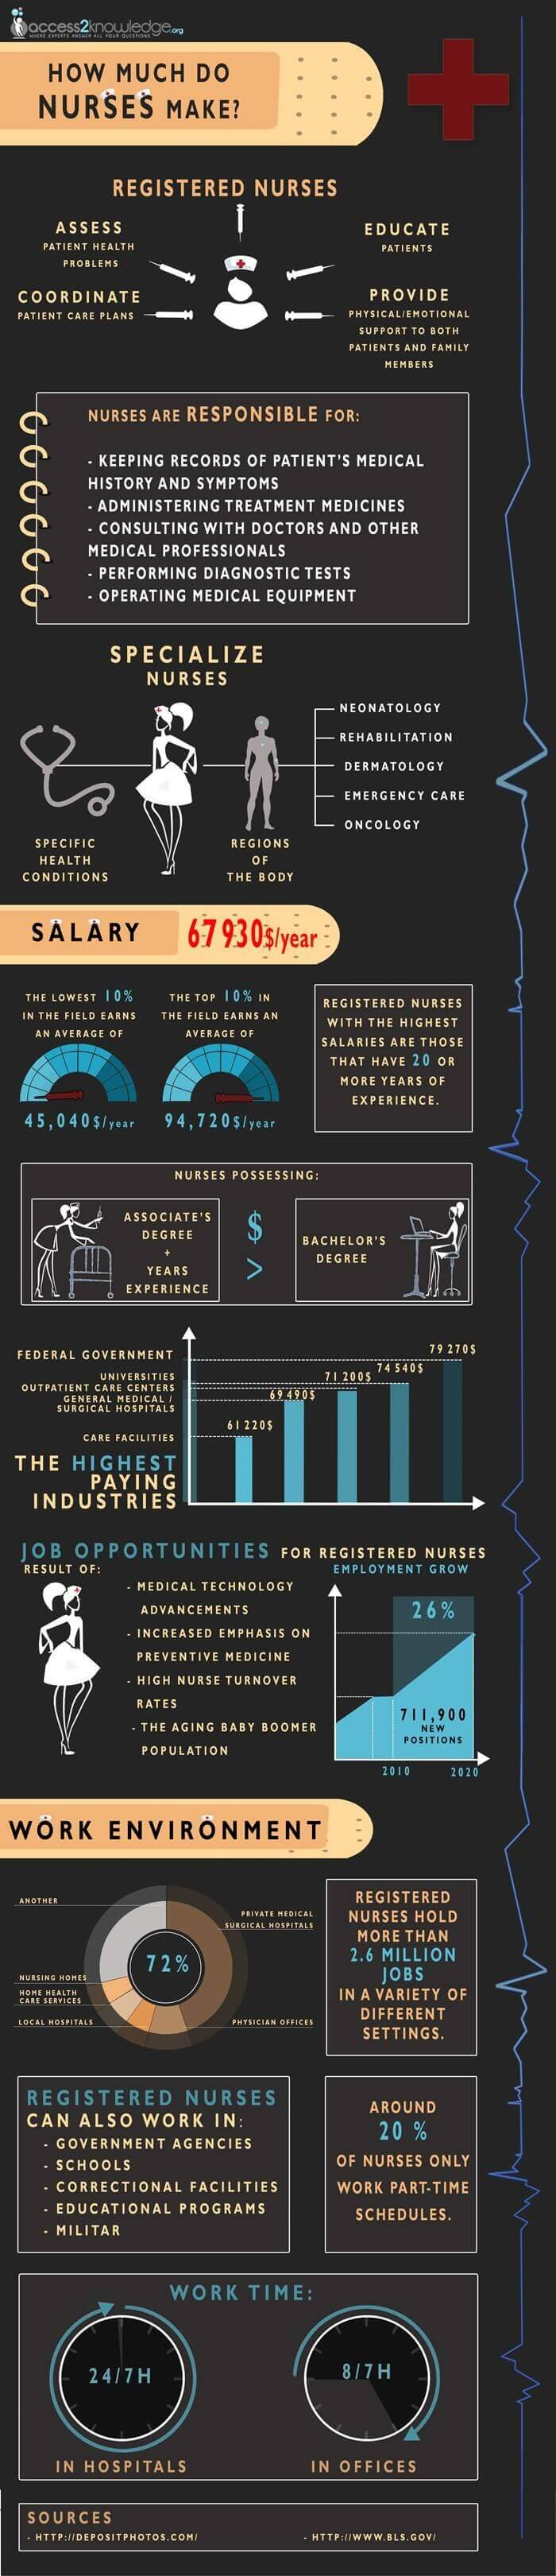 an infographic on how much do nurses make